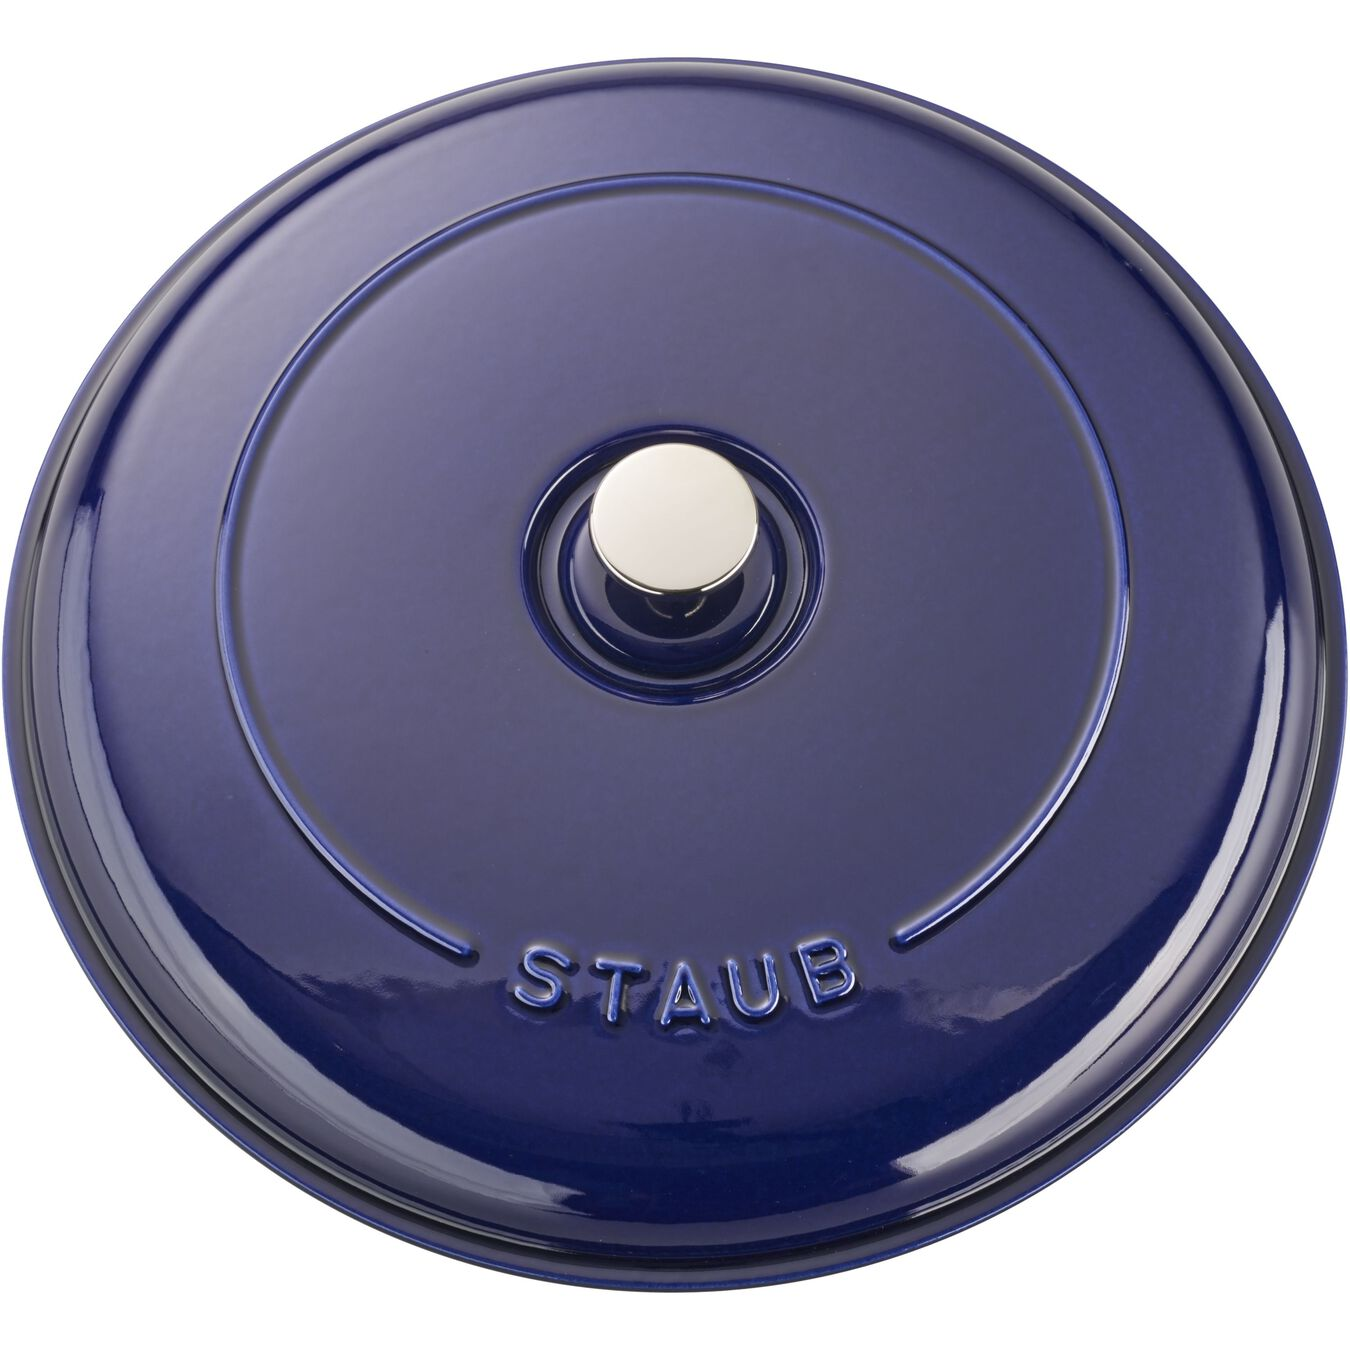 12-inch, Saute pan, dark blue,,large 3